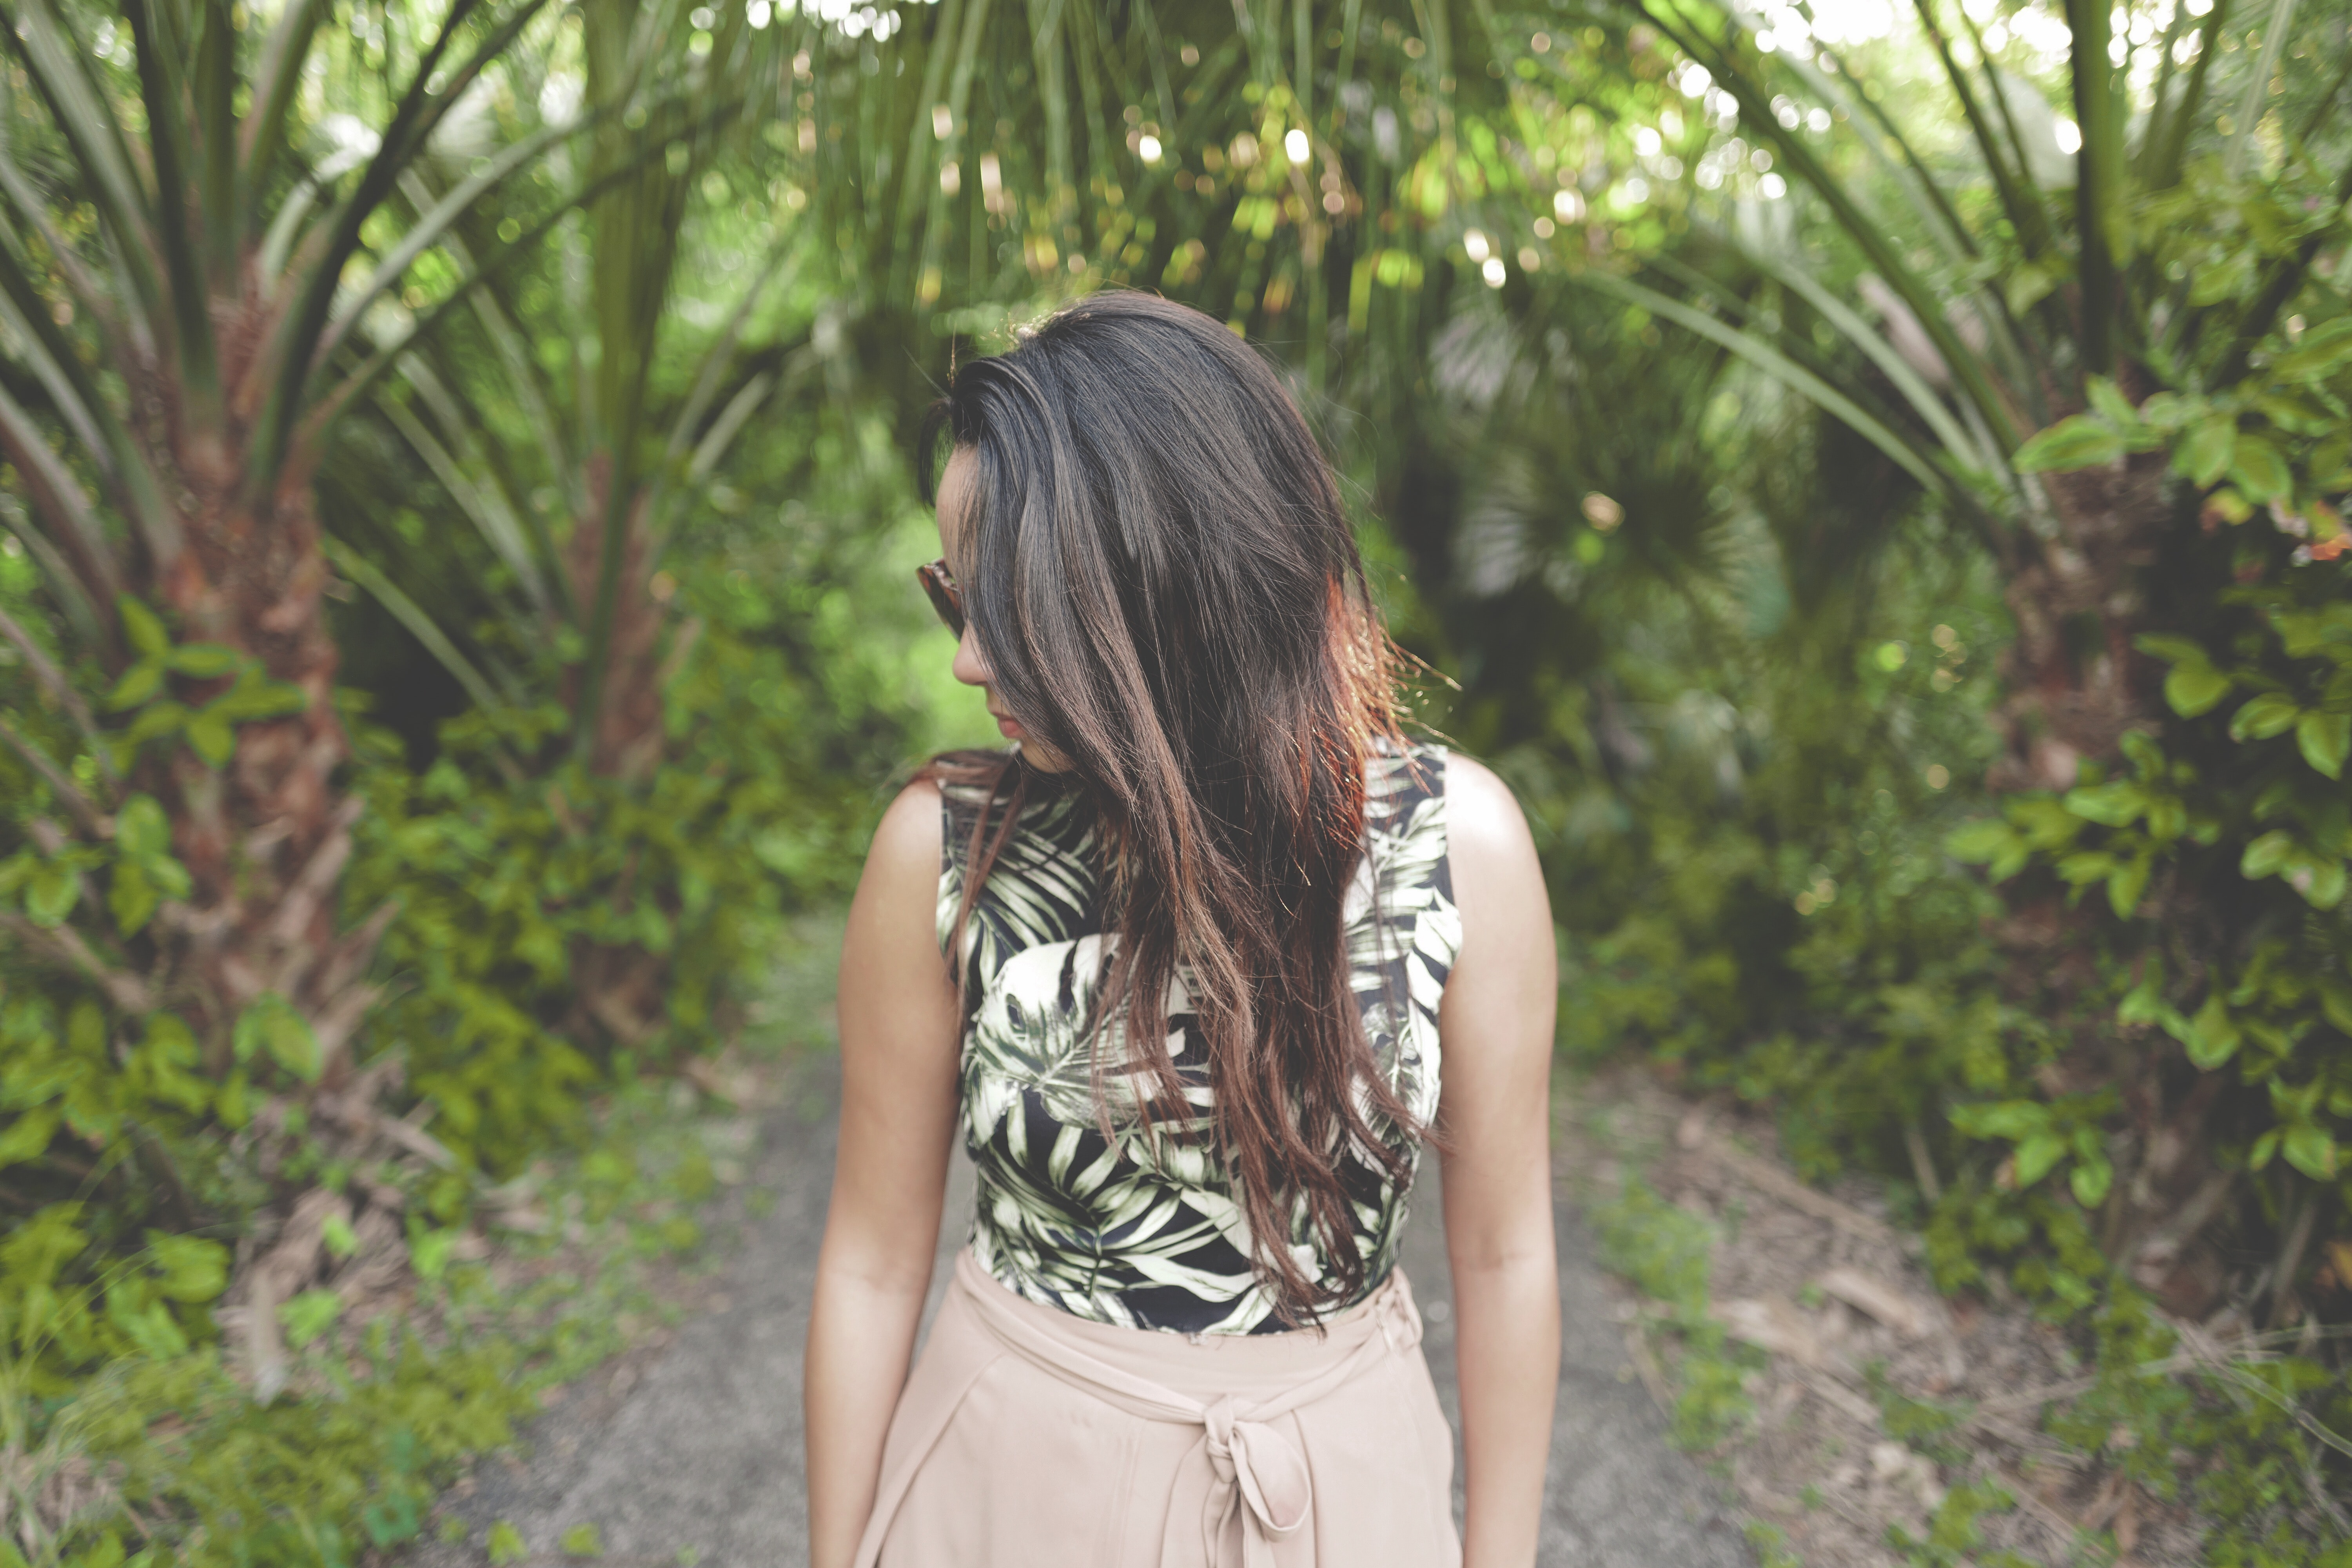 A young dark-haired woman in sunglasses tilting her head to the side in a tropical setting